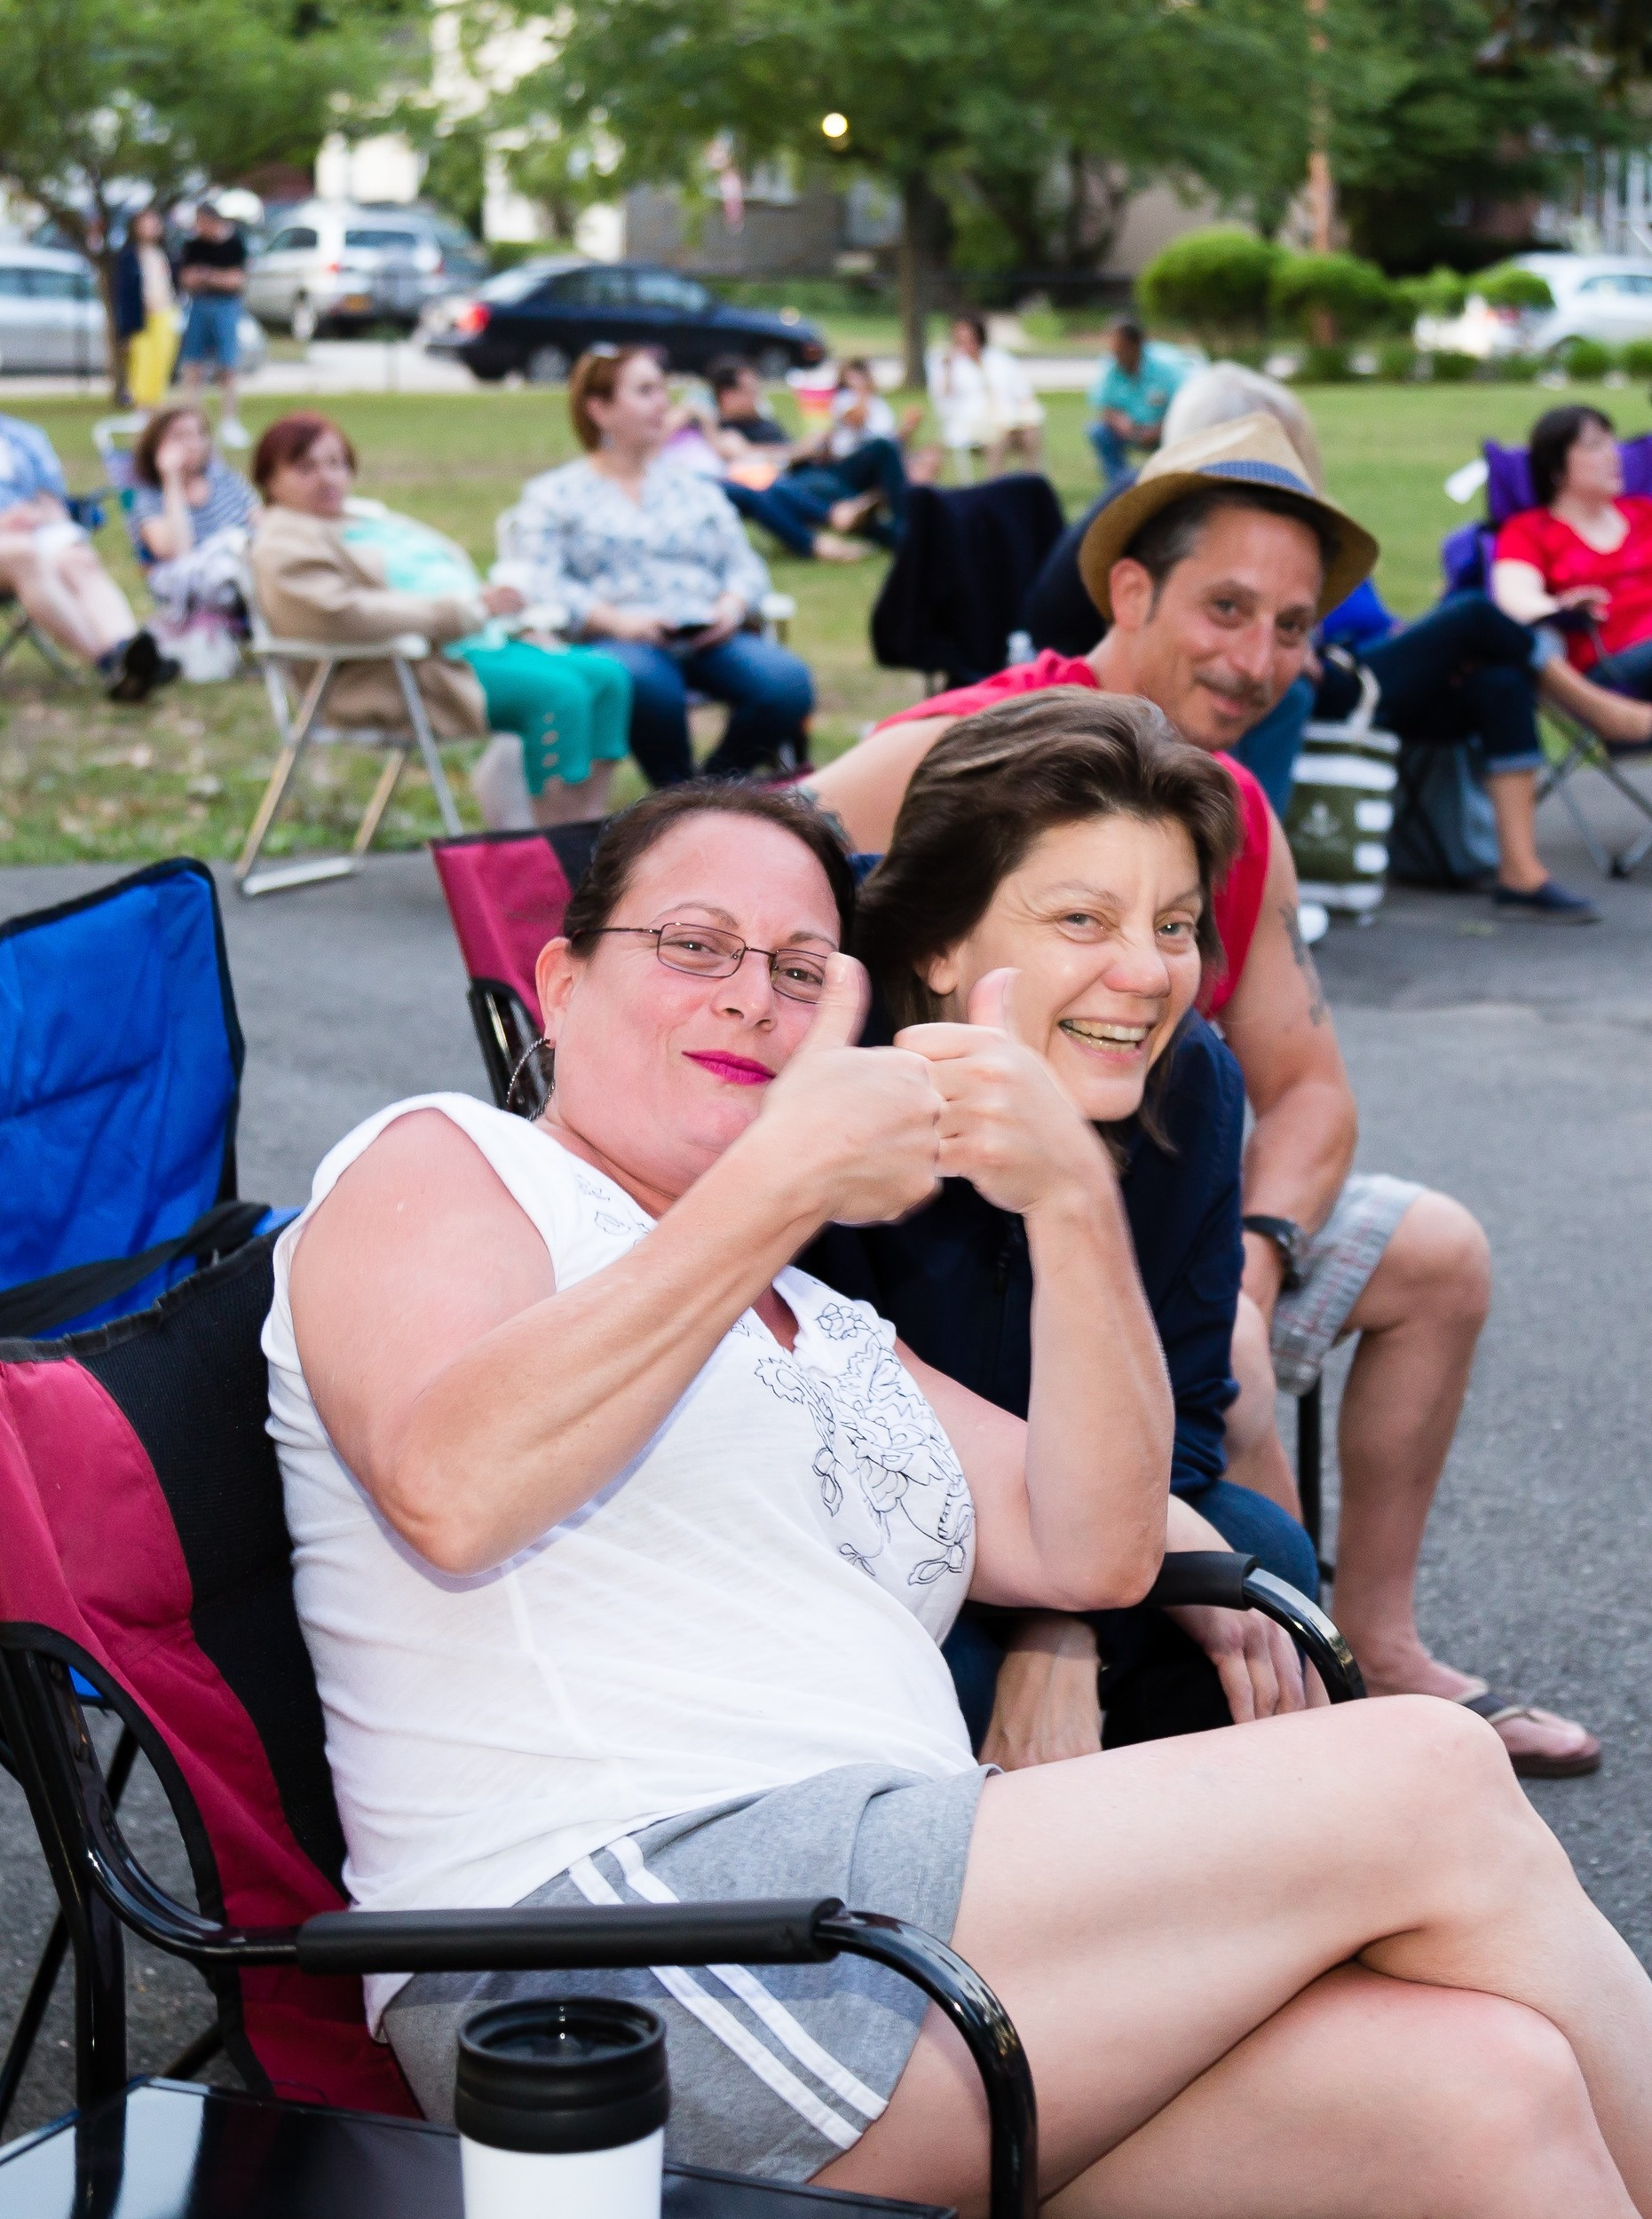 Concert goers at The Steel Silk Band performance at East Rockaway Summer Concert Series at Memorial Park in East Rockaway, New York on Saturday July 2nd 2016.